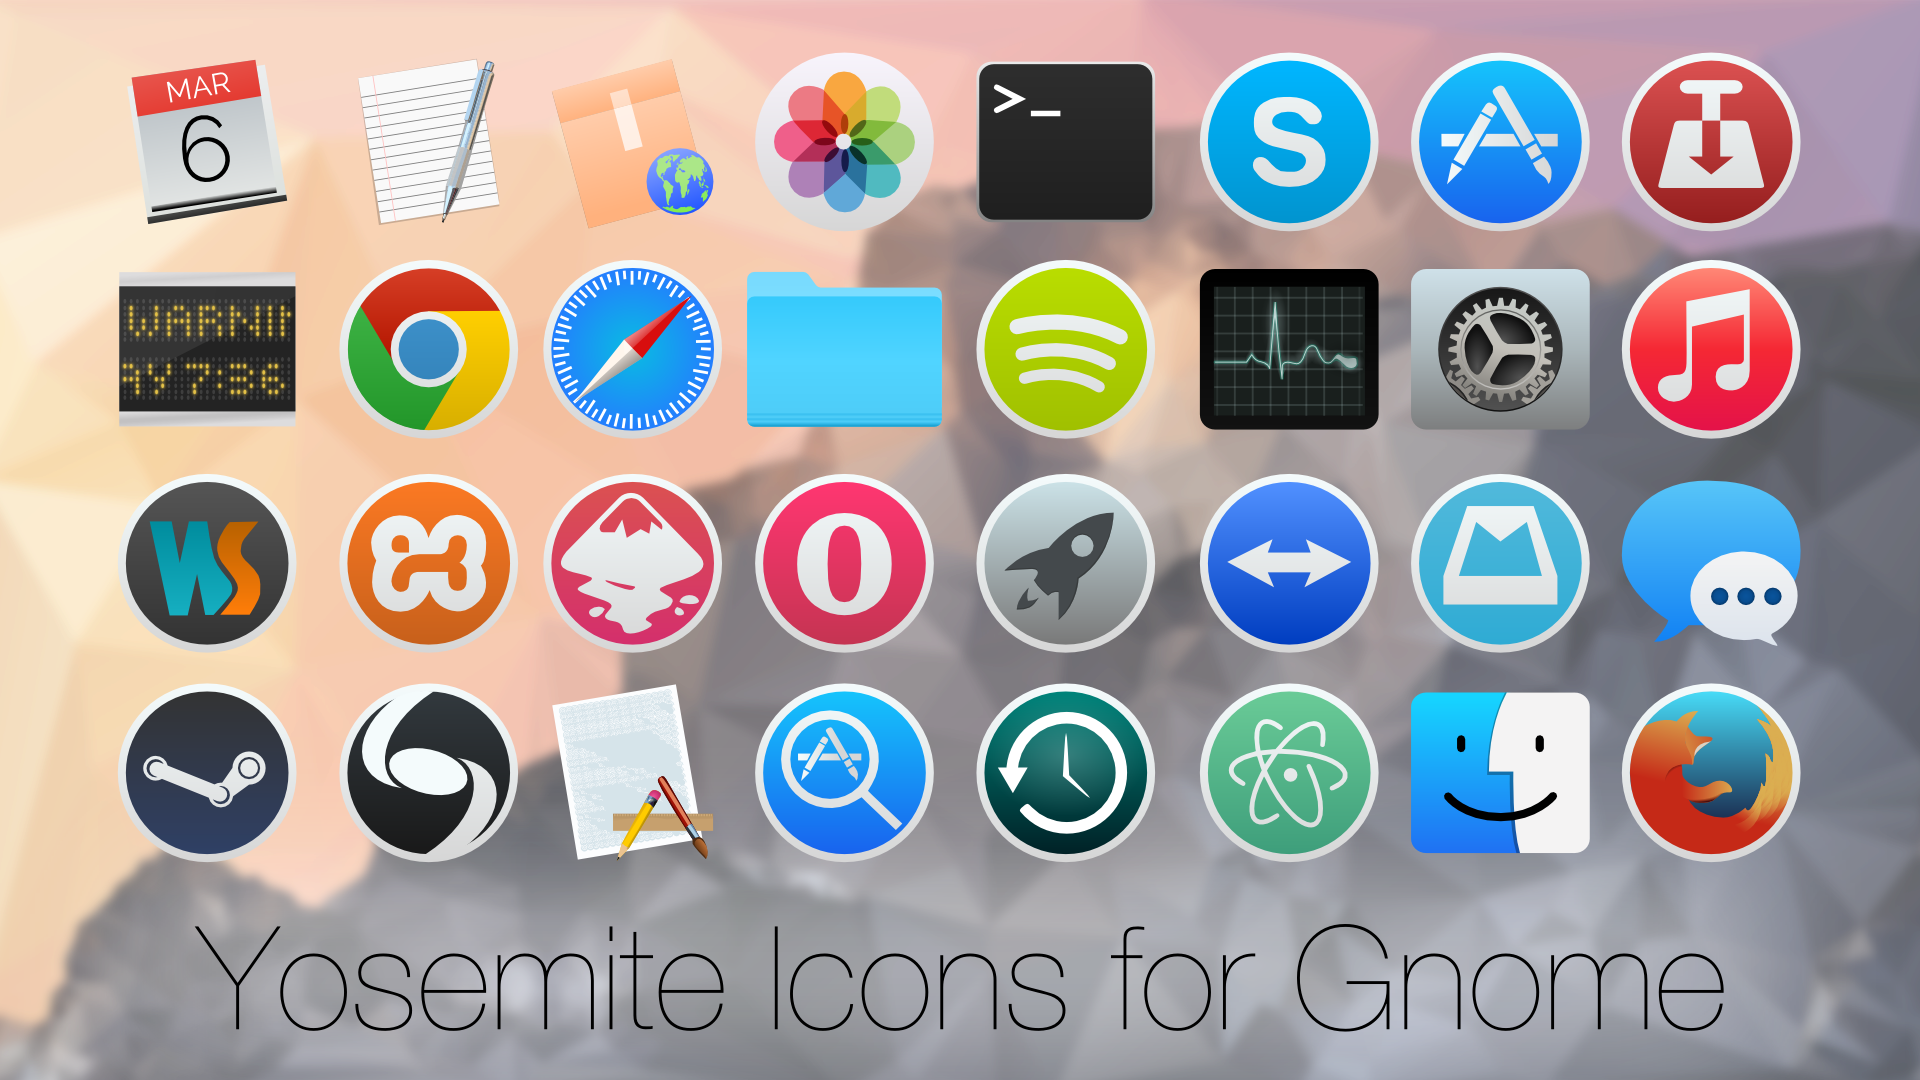 Yosemite Icons for Linux by zacpier